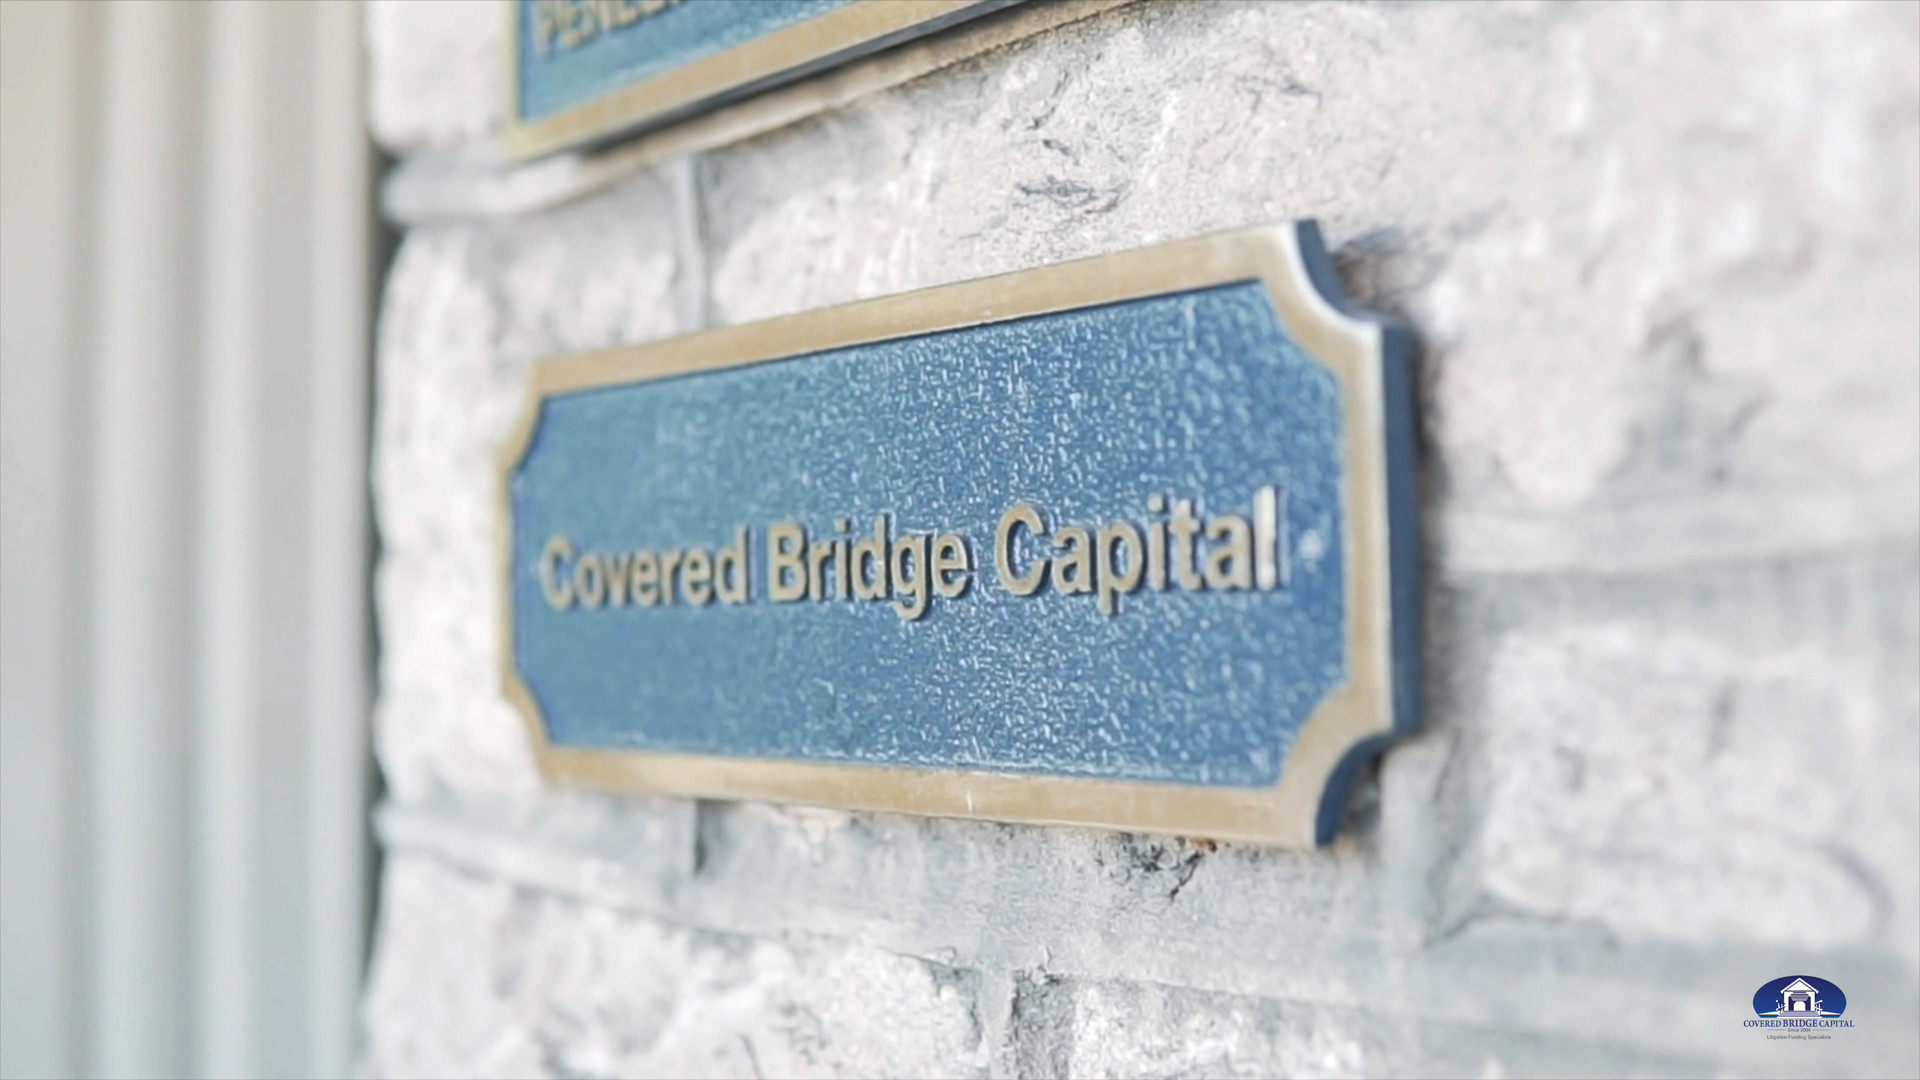 Covered Bridge Capital: Personal Injury Attorneys